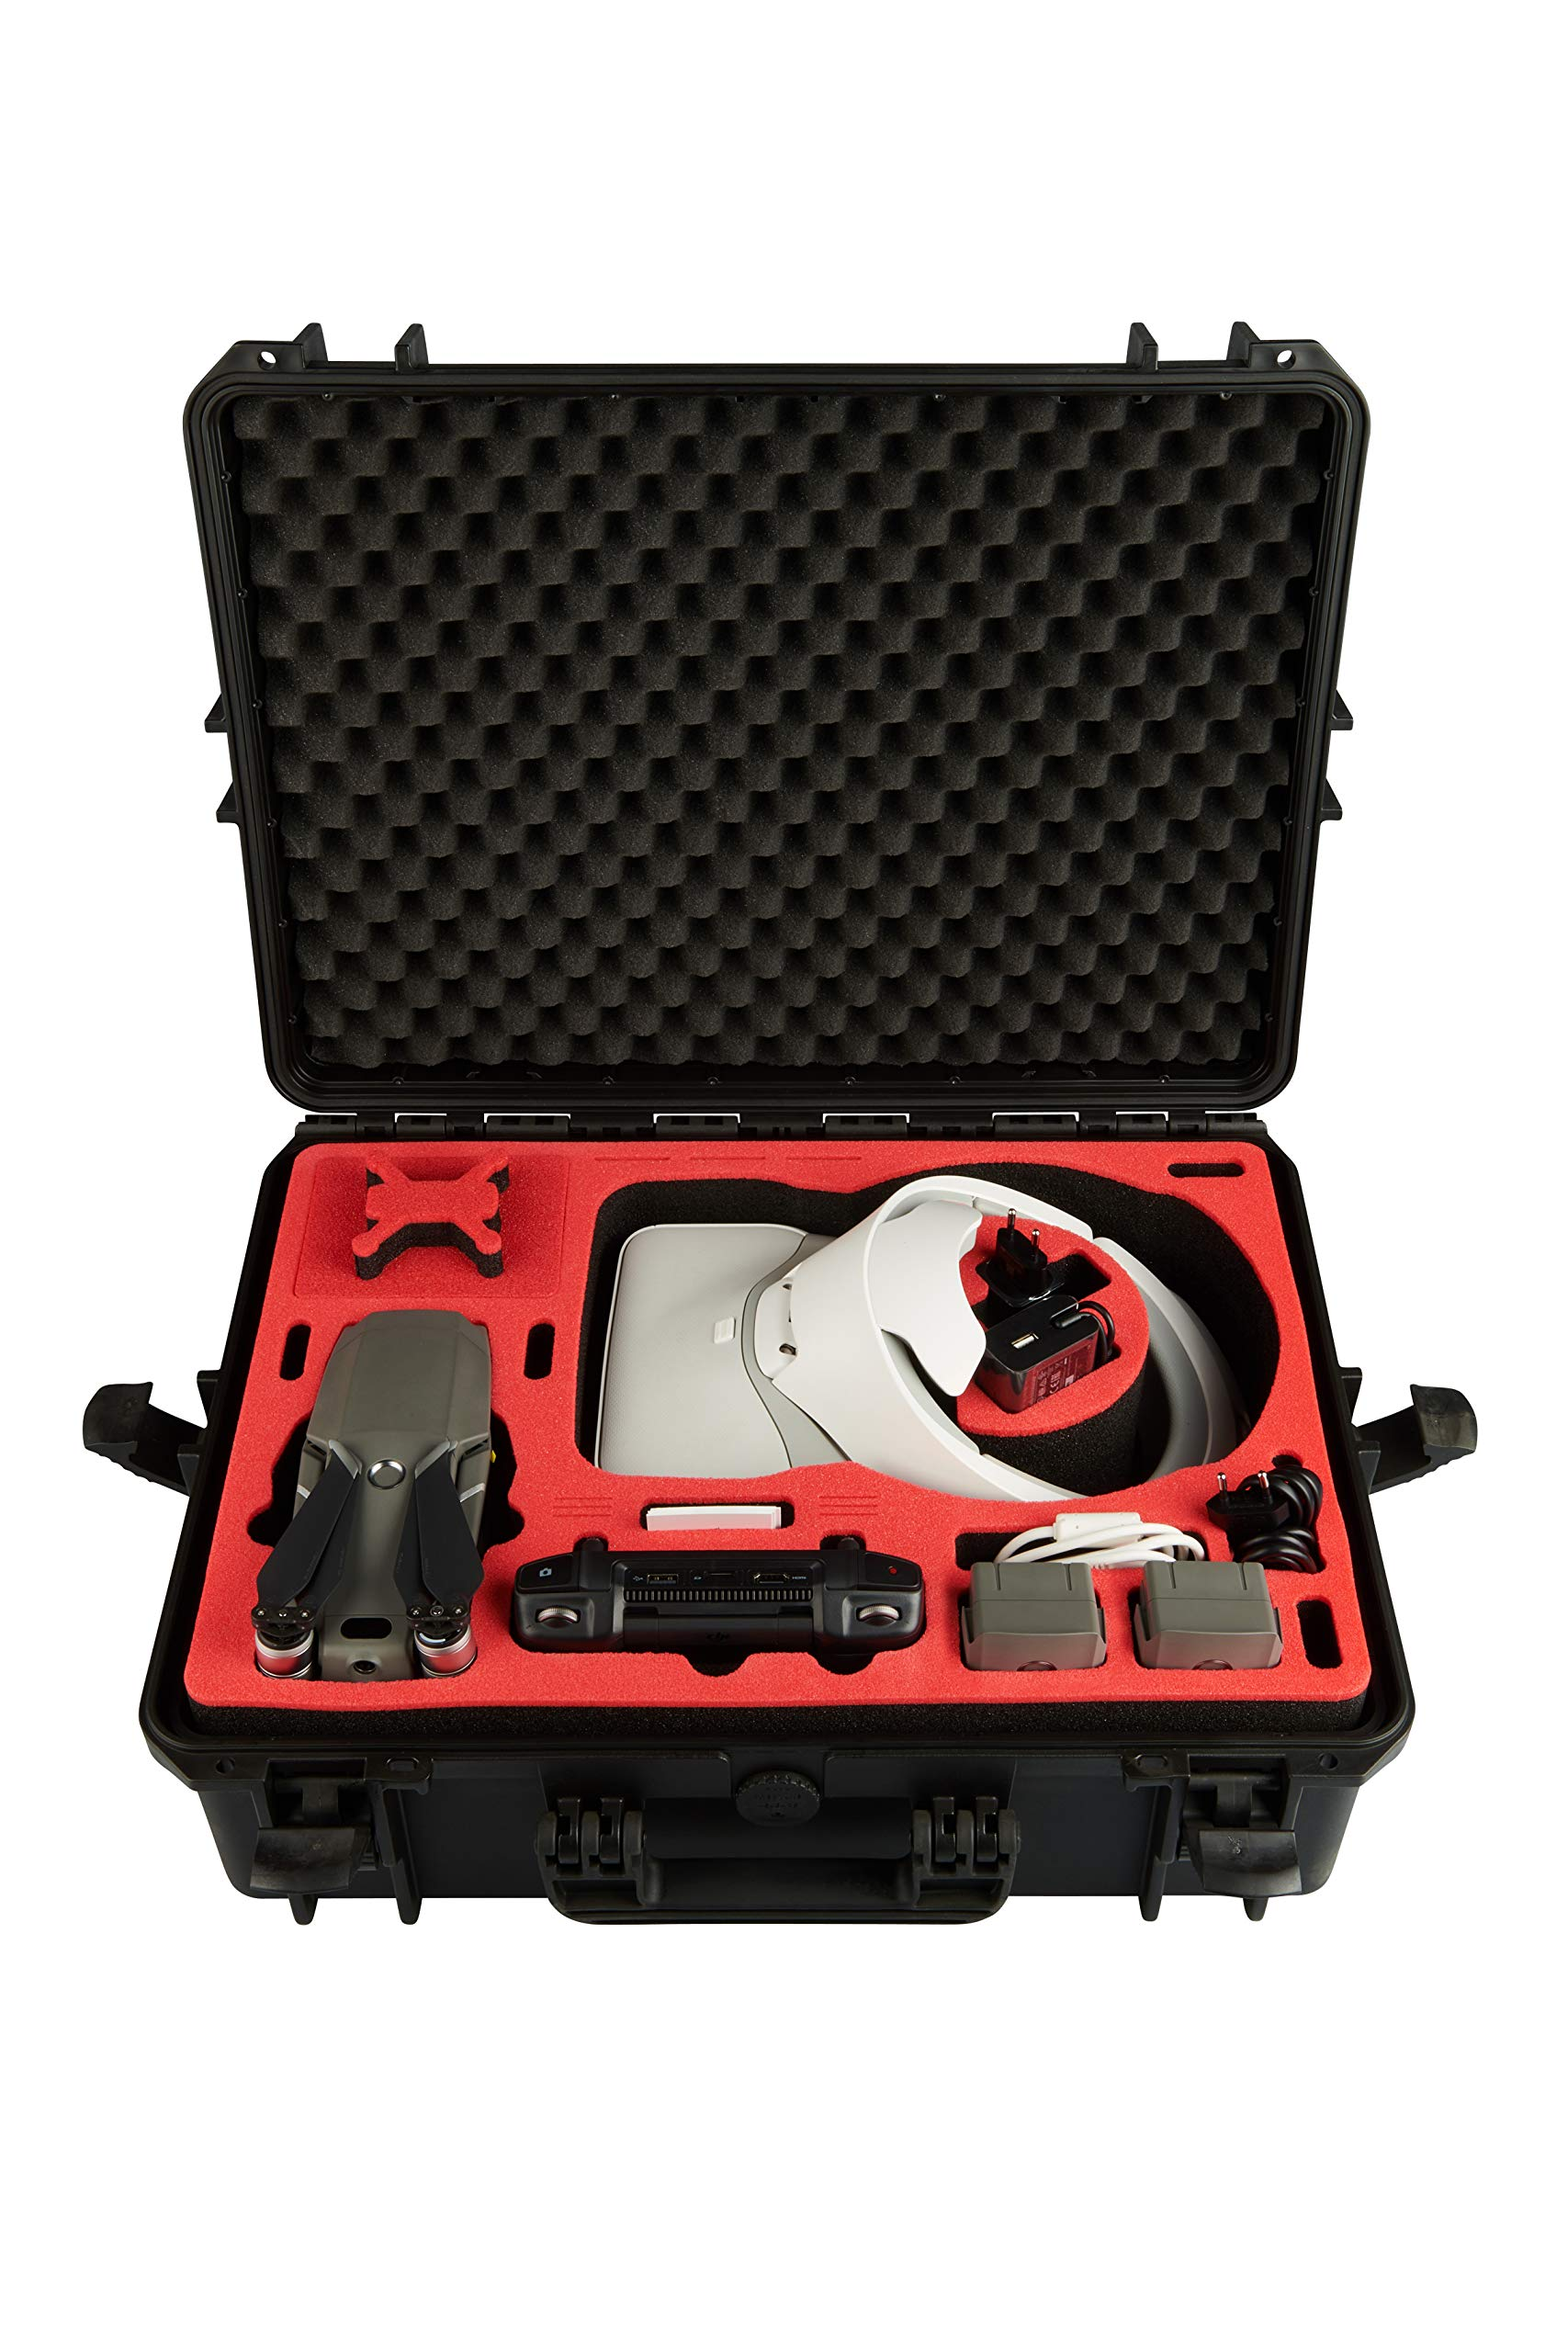 Professional Carrying Case for DJI Mavic 2 Pro & Zoom and DJI Goggles and Additional Equipment Like The New DJI Smart Controller